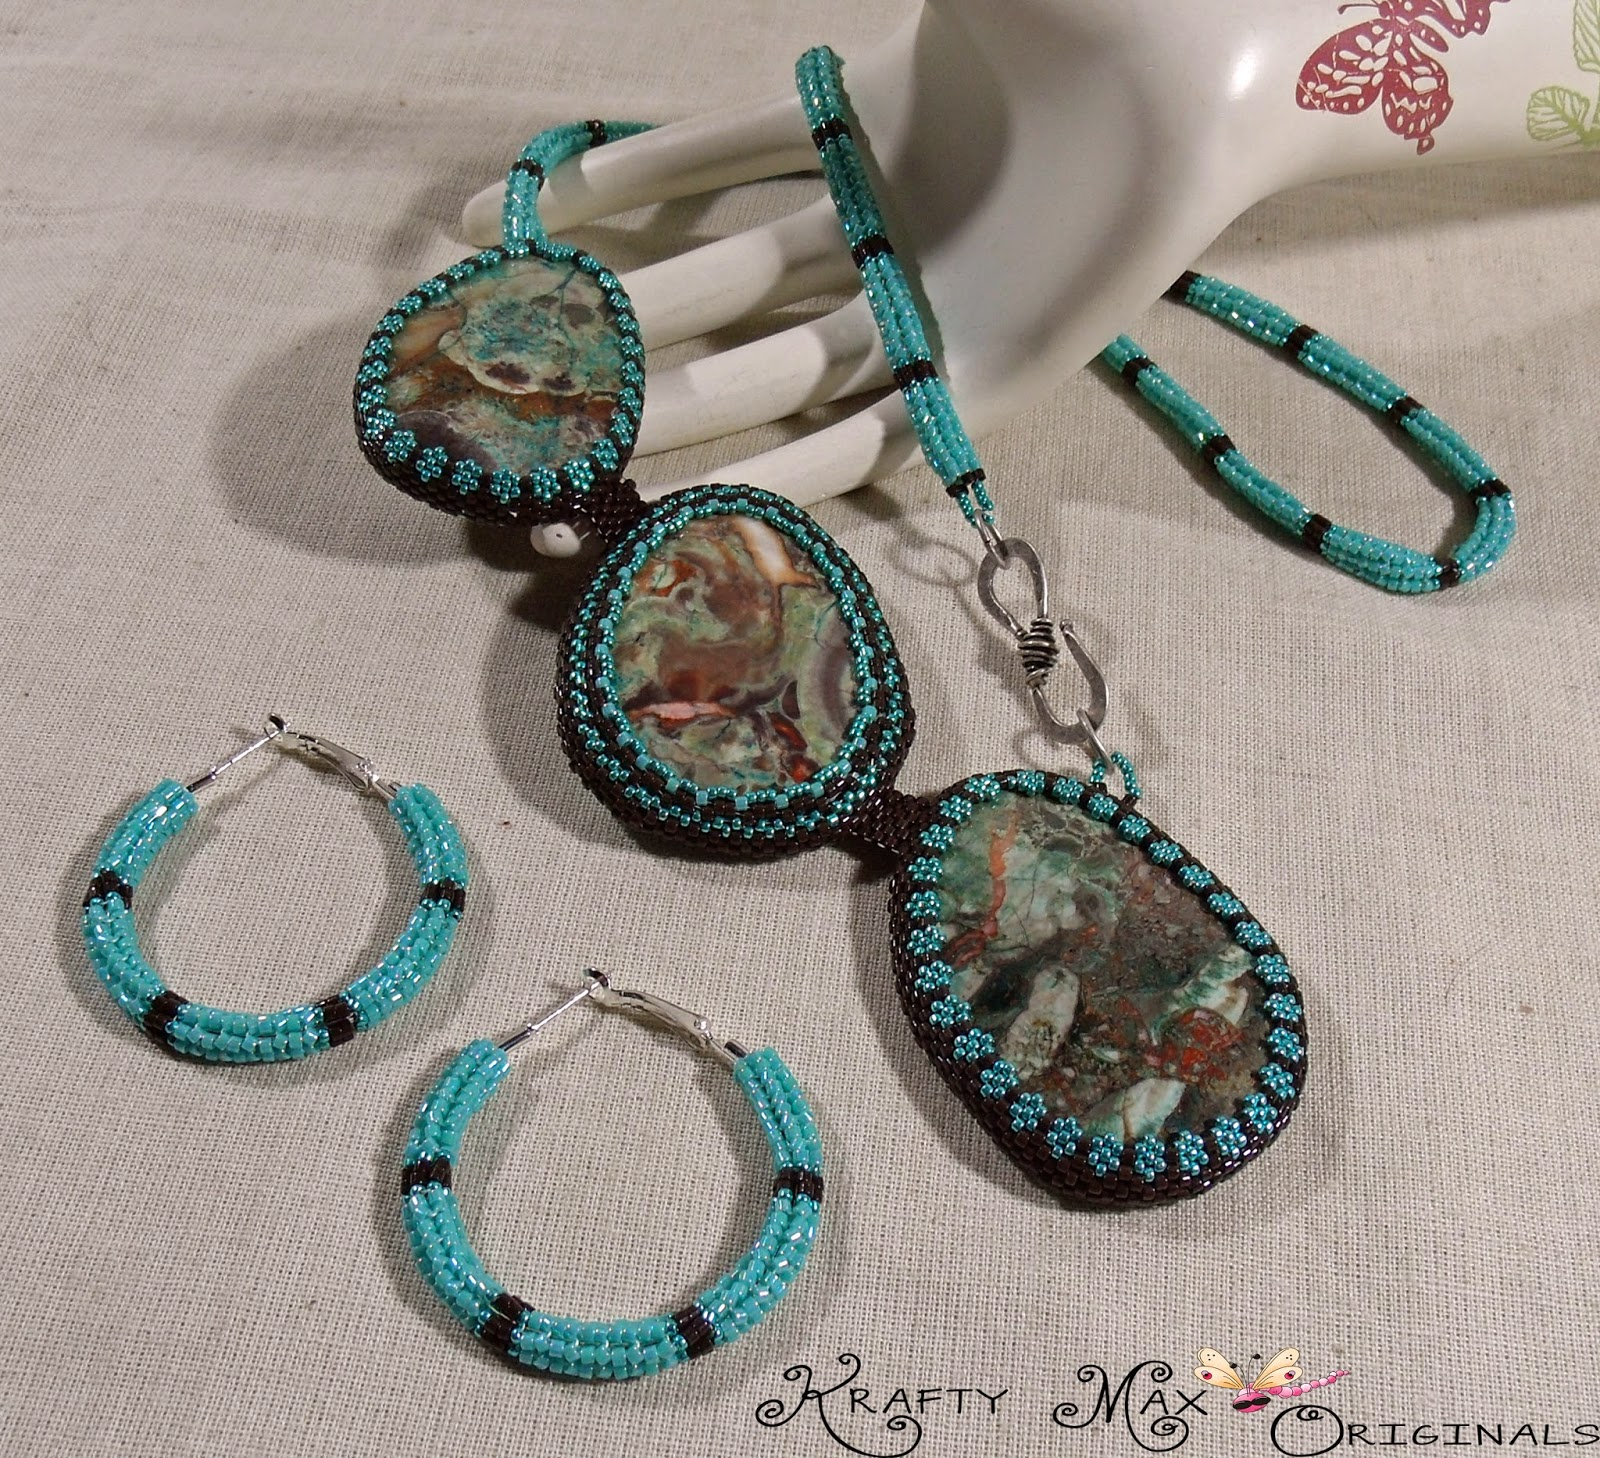 http://www.artfire.com/ext/shop/product_view/KraftyMax/8416953/branching_into_winter_-_a_handmade_beadwoven_necklace_by_krafty_max/handmade/jewelry/sets/beadwoven